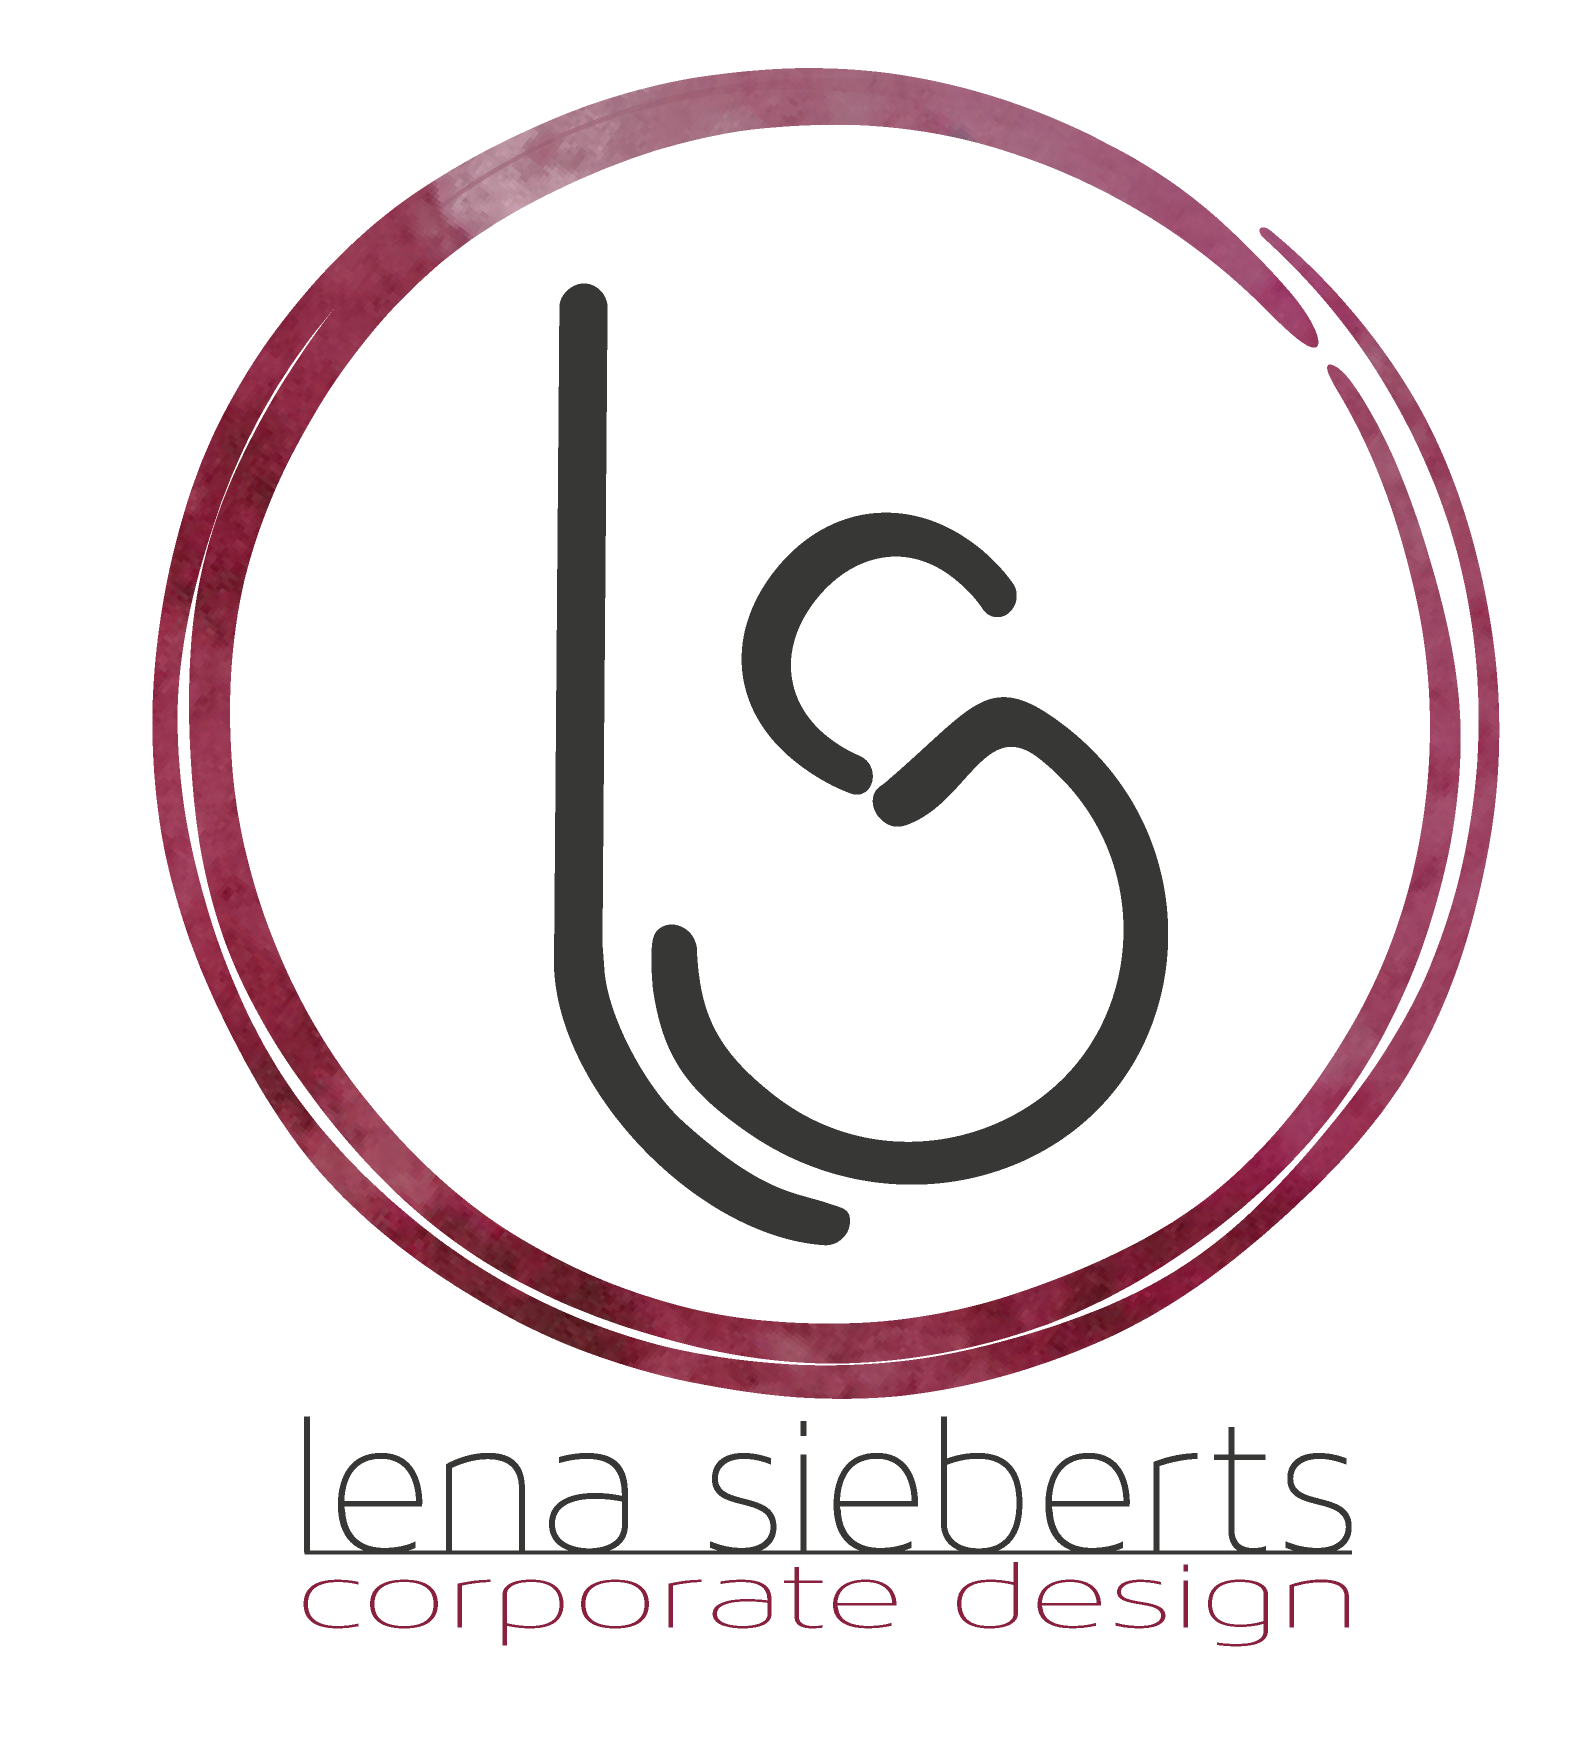 Logo - Lena Sieberts Corporate Design